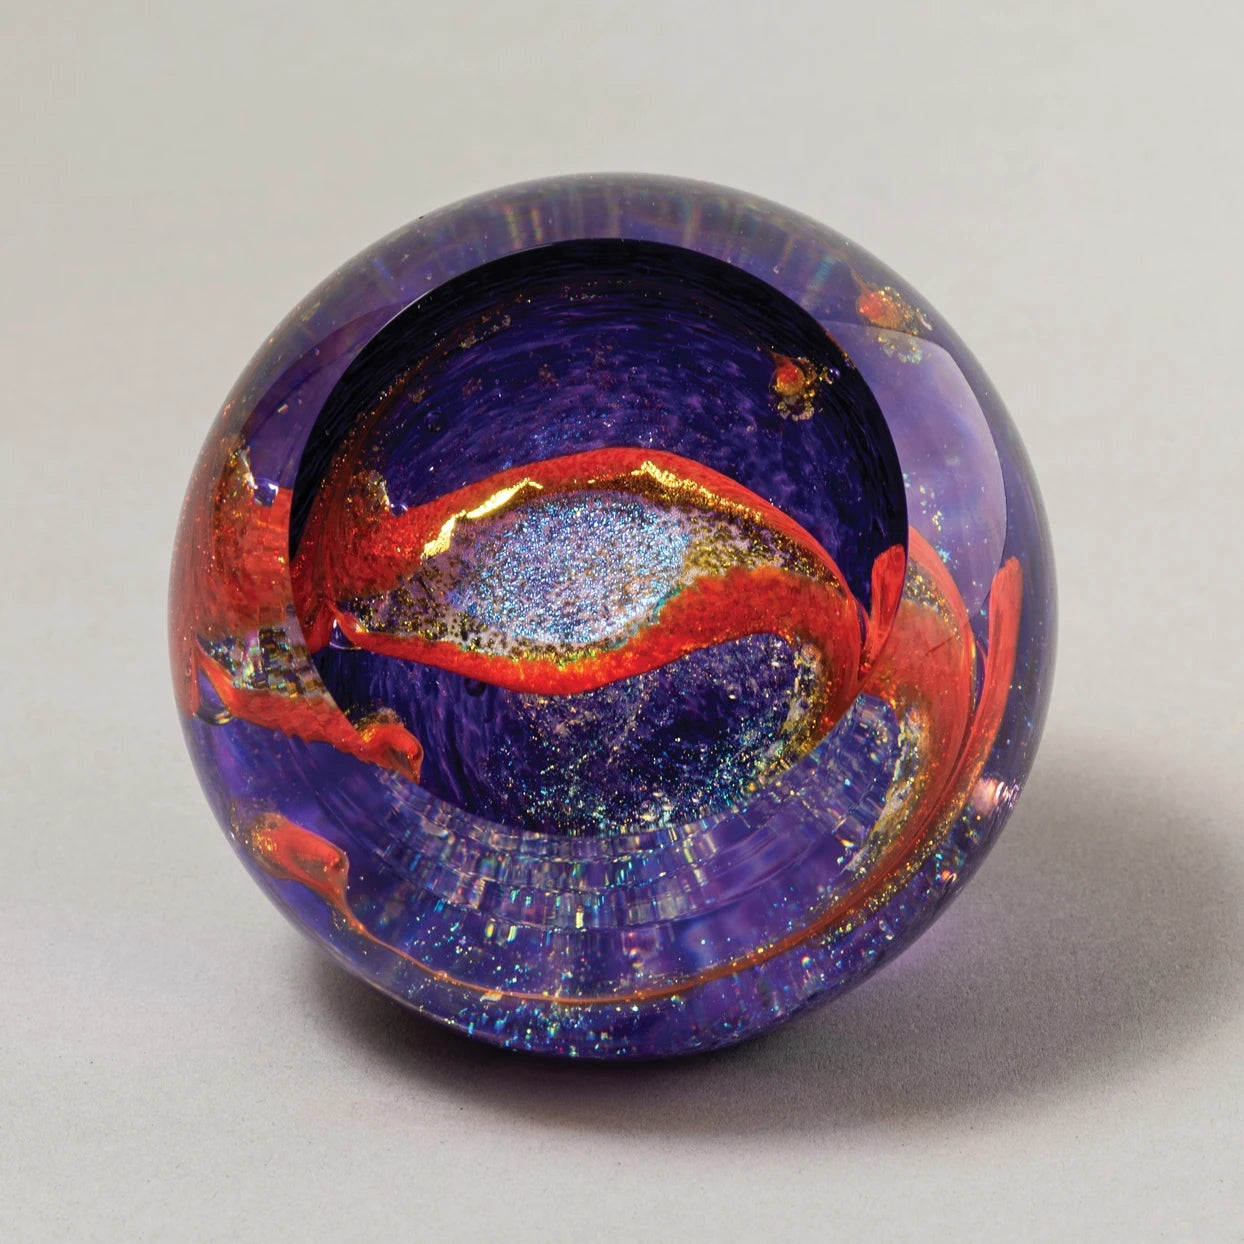 Celestial God's Eye Paperweight